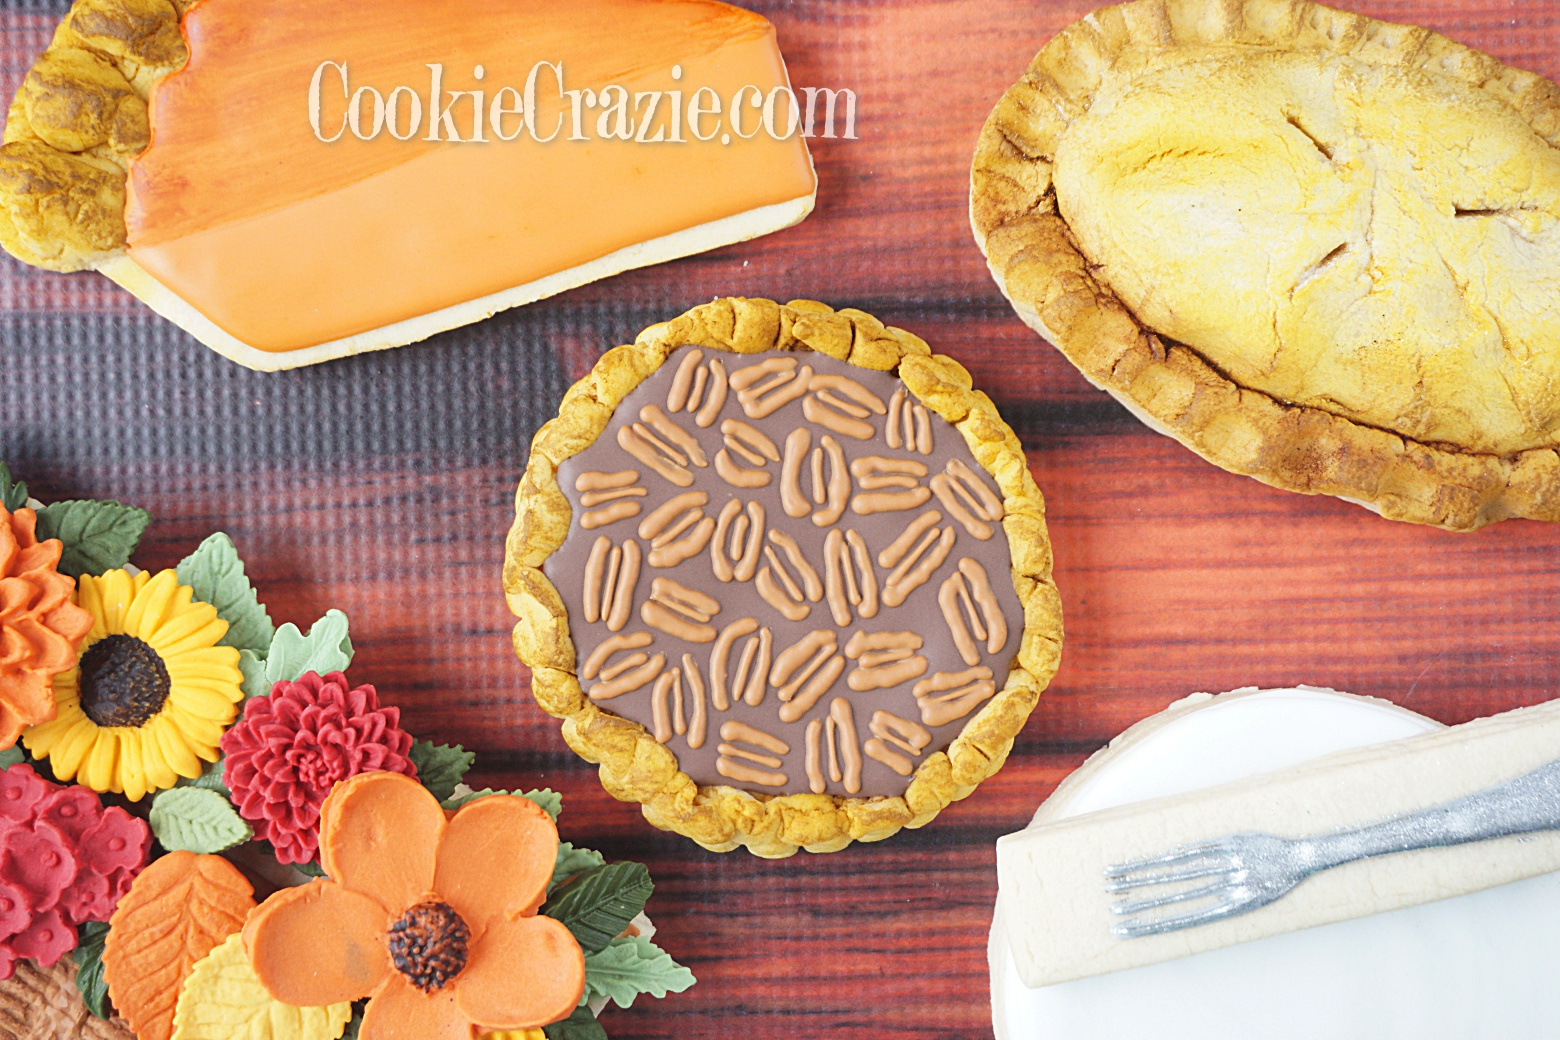 Pecan Pie Decorated Sugar Cookie YouTube video  HERE